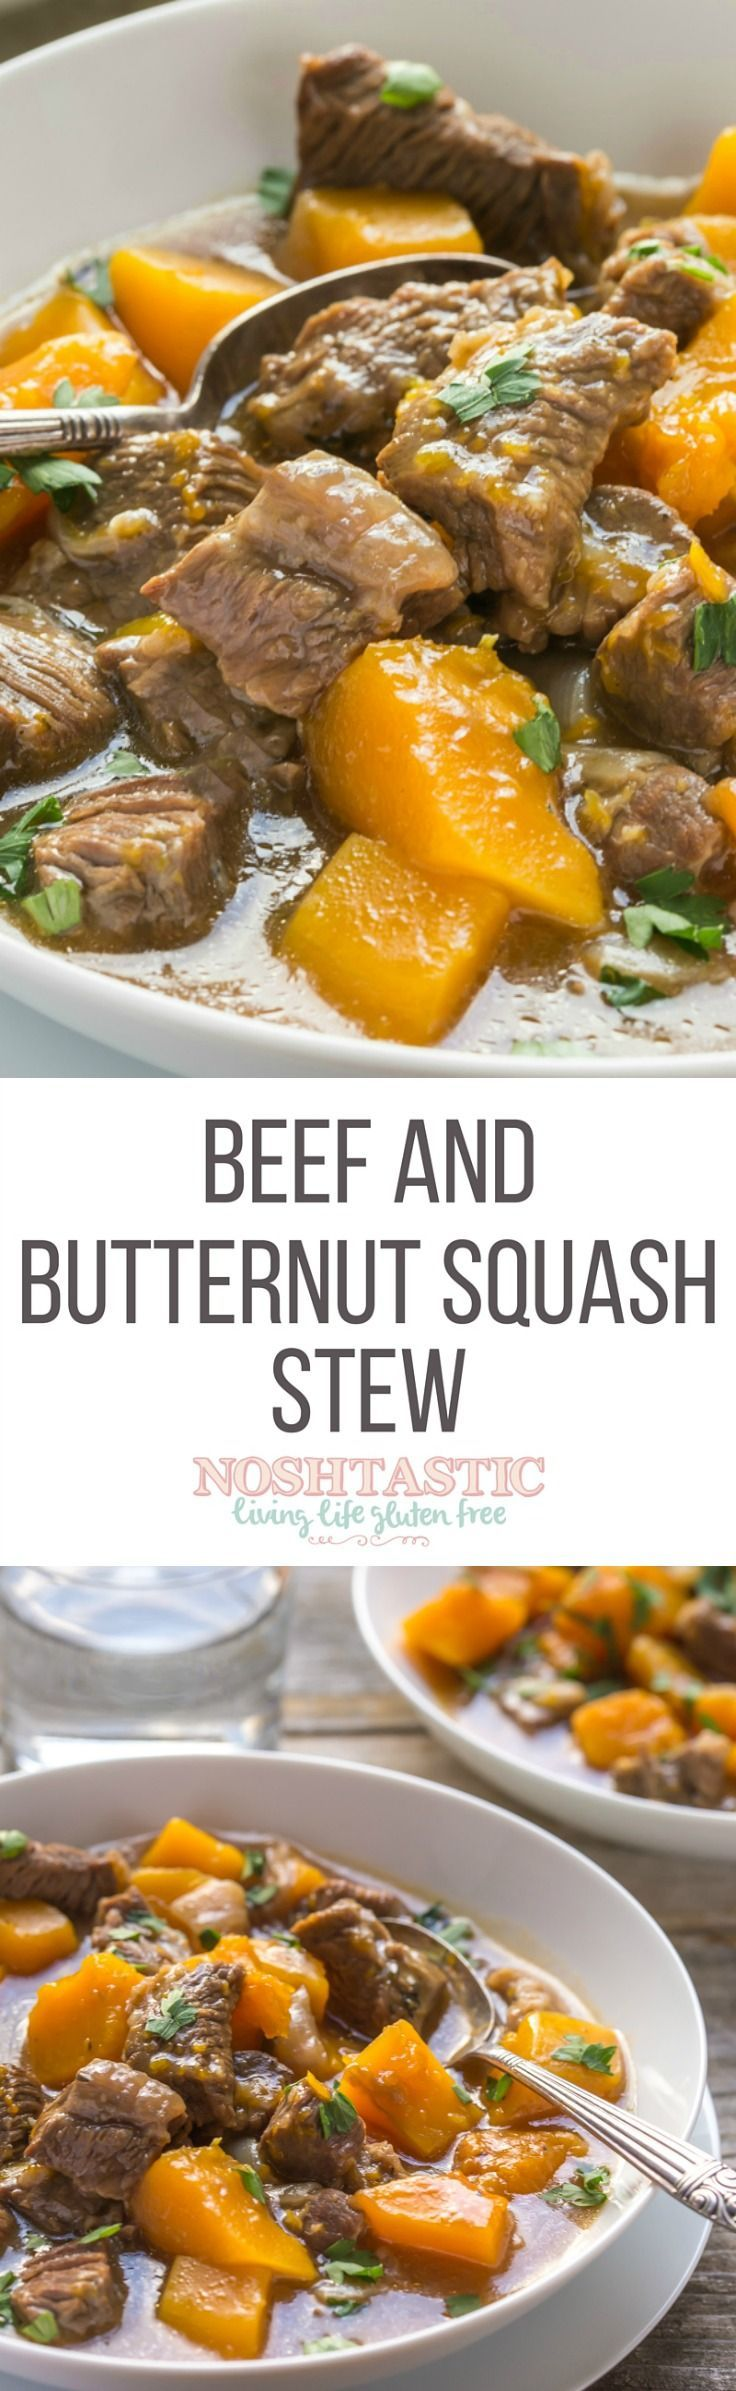 My Gluten Free Beef Stew Recipe With Butternut Squash Is Easy To